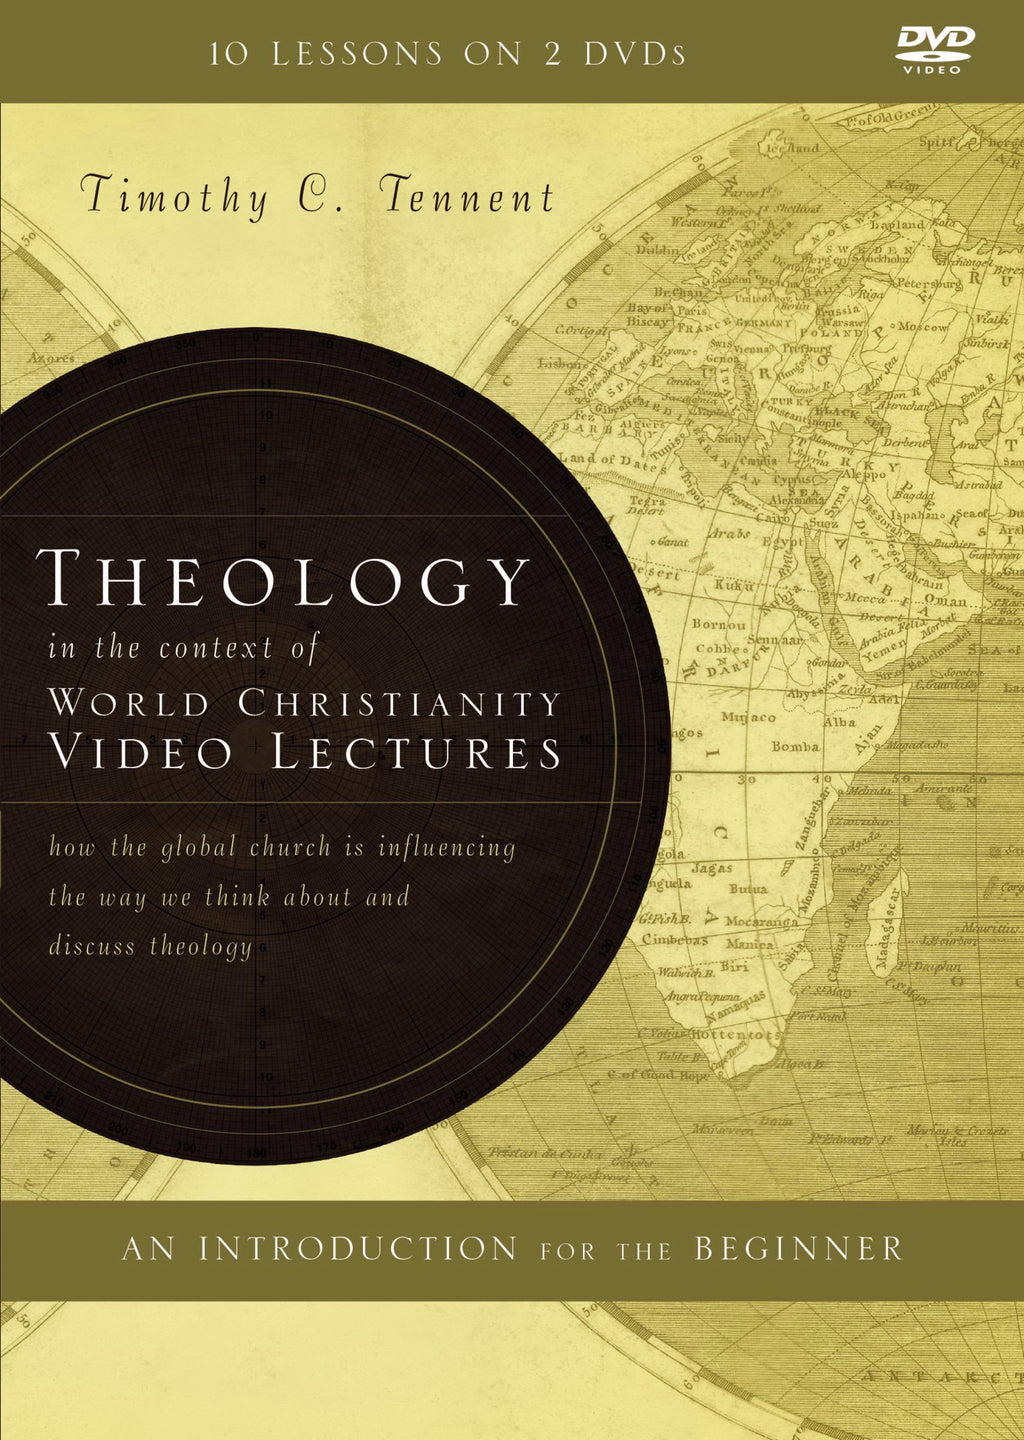 DVD-Theology In The Context Of World Christianity Video Lectures